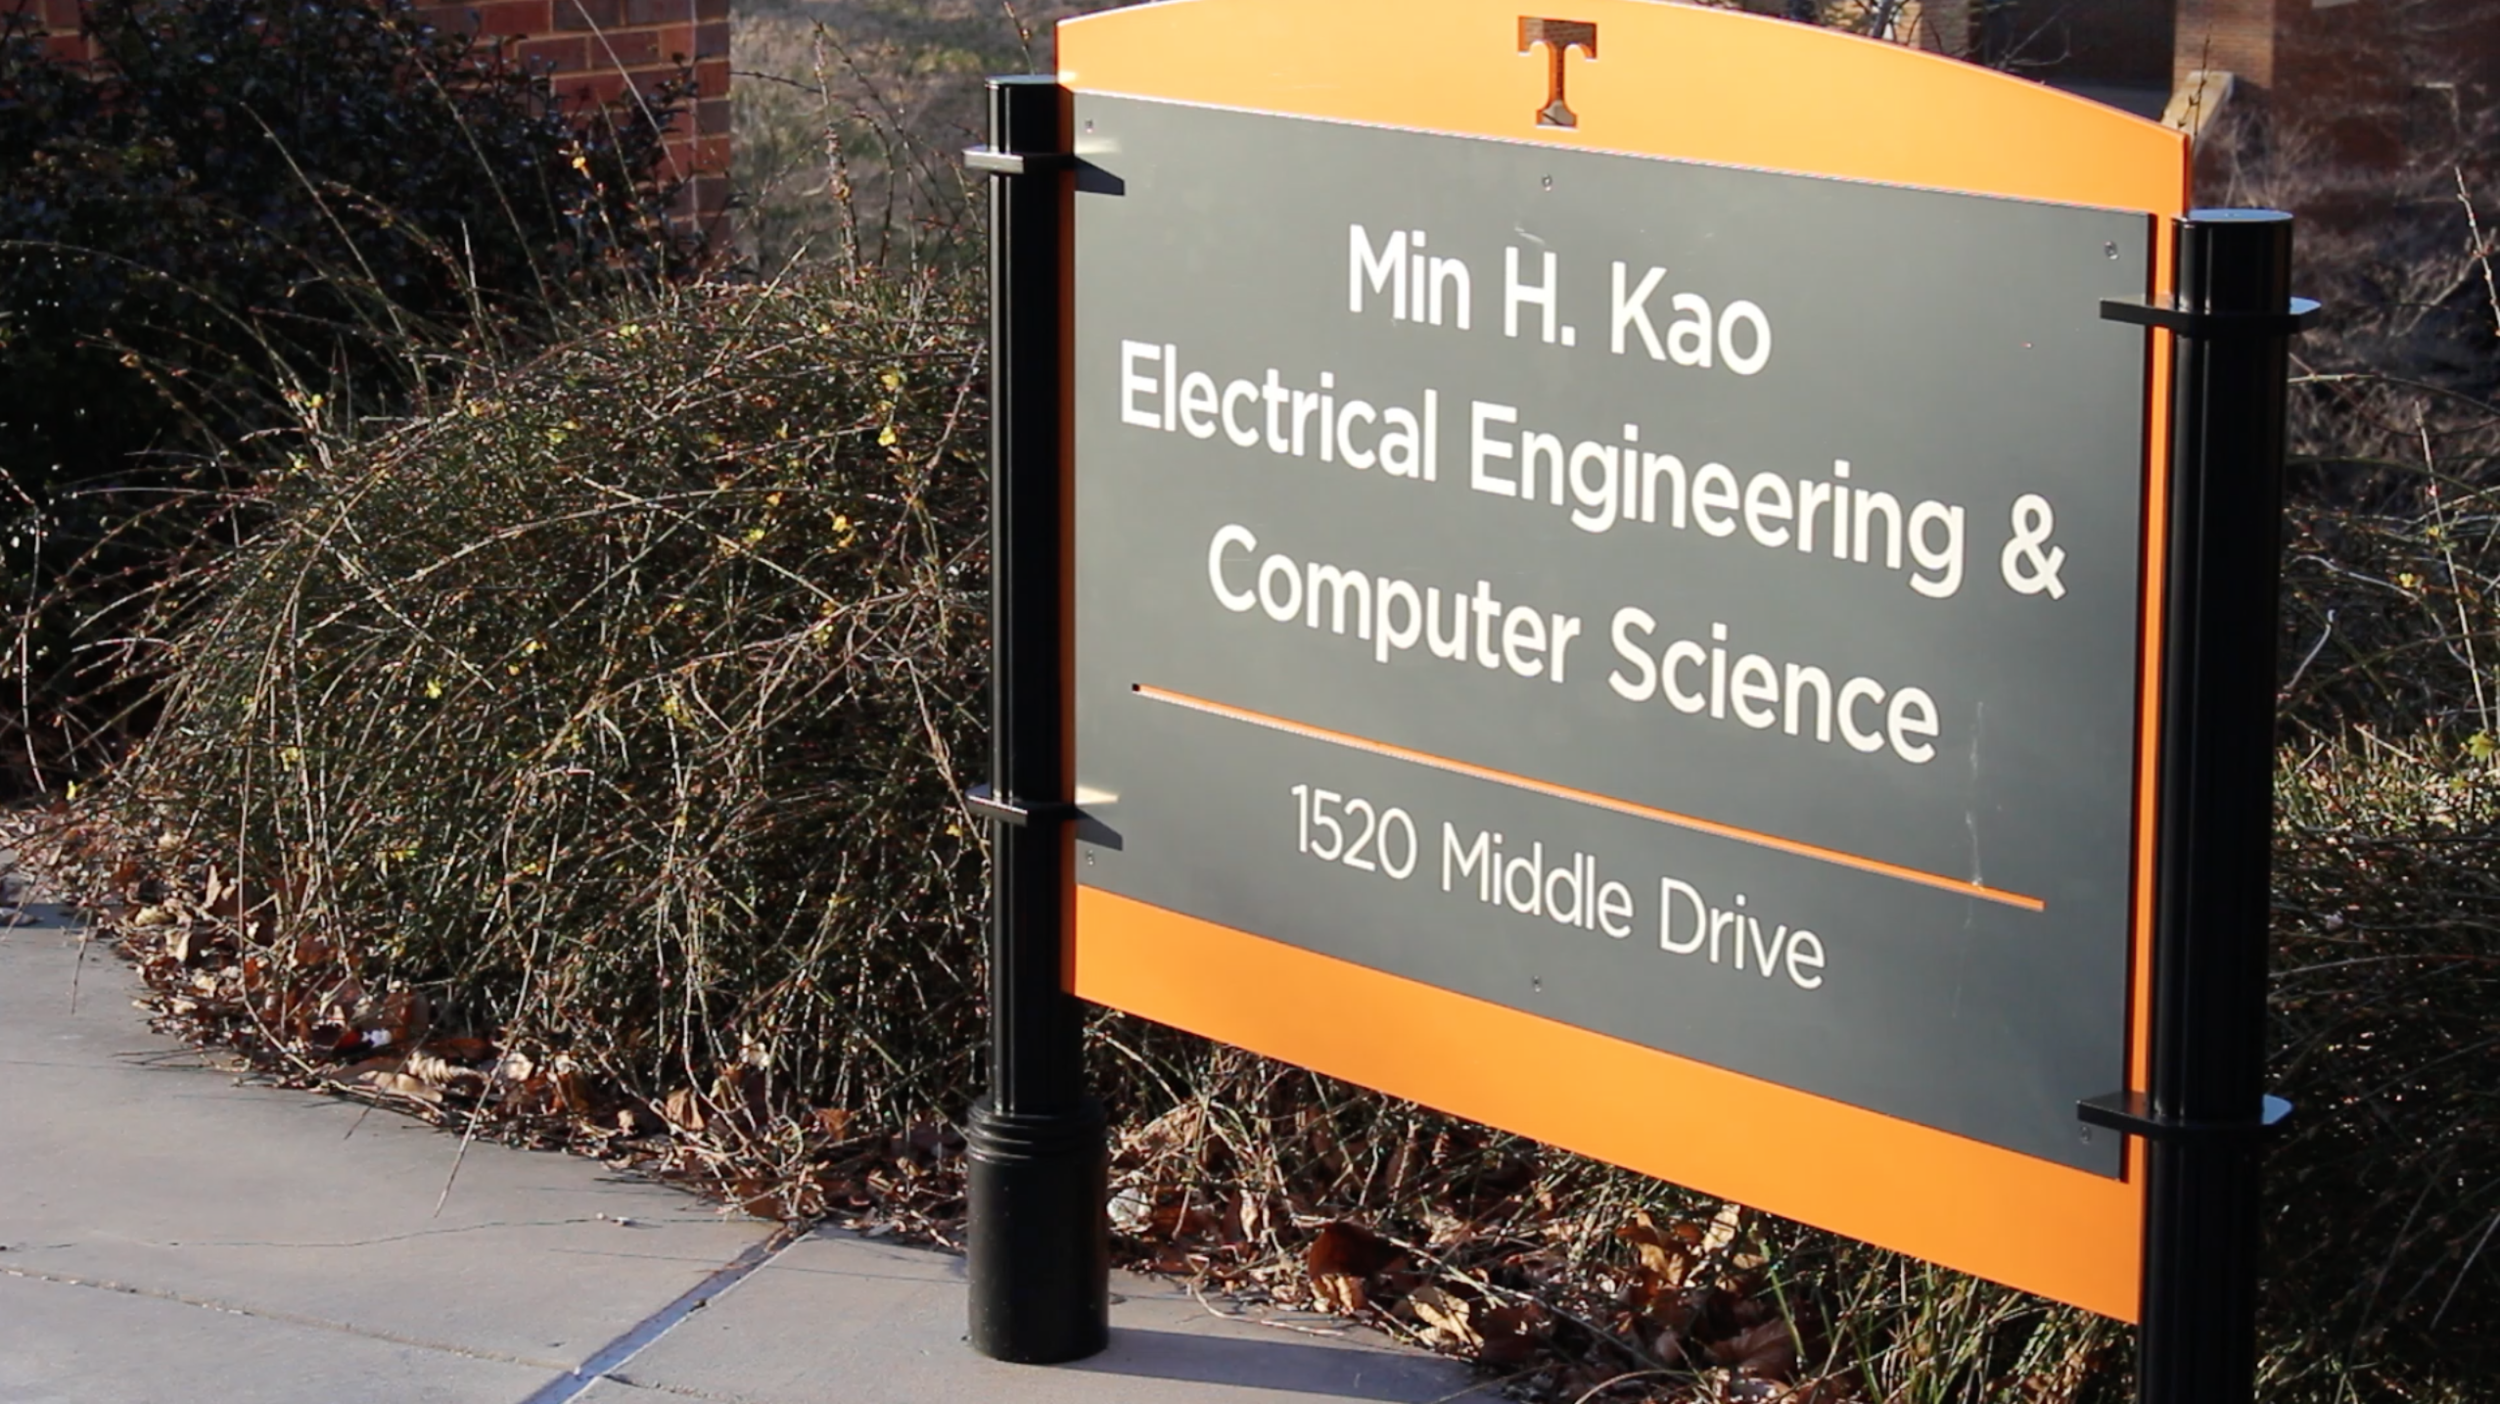 The Min H. Kao Building on campus is the home of the Electrical Engineering & Computer Science Department